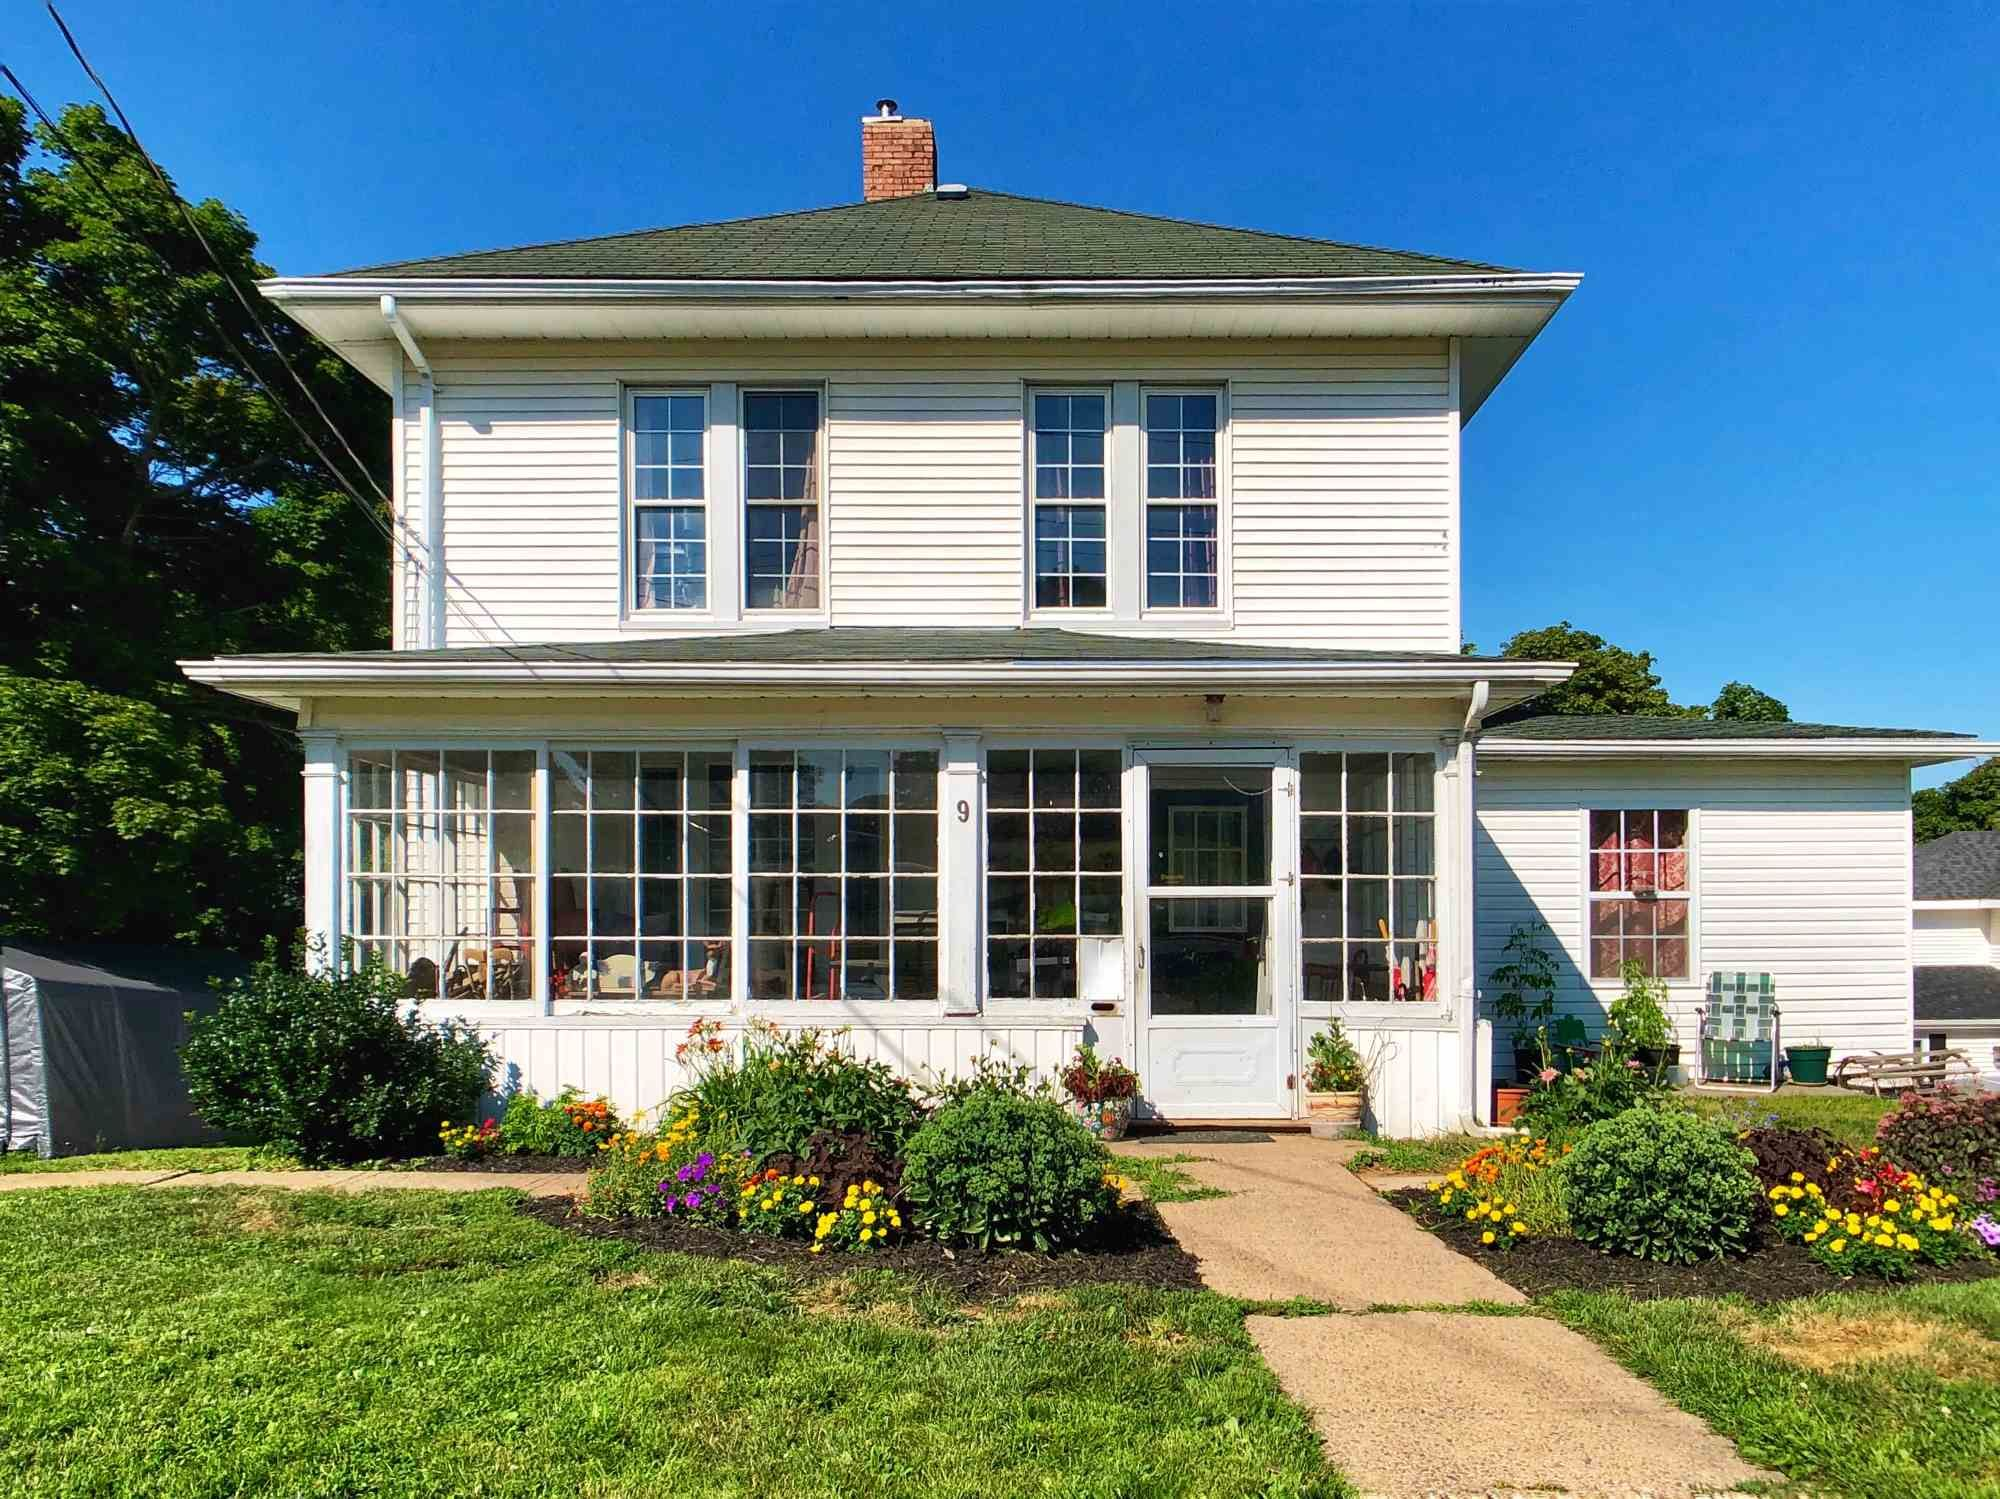 Main Photo: 9 ACADEMY Street in Kentville: 404-Kings County Residential for sale (Annapolis Valley)  : MLS®# 202109203